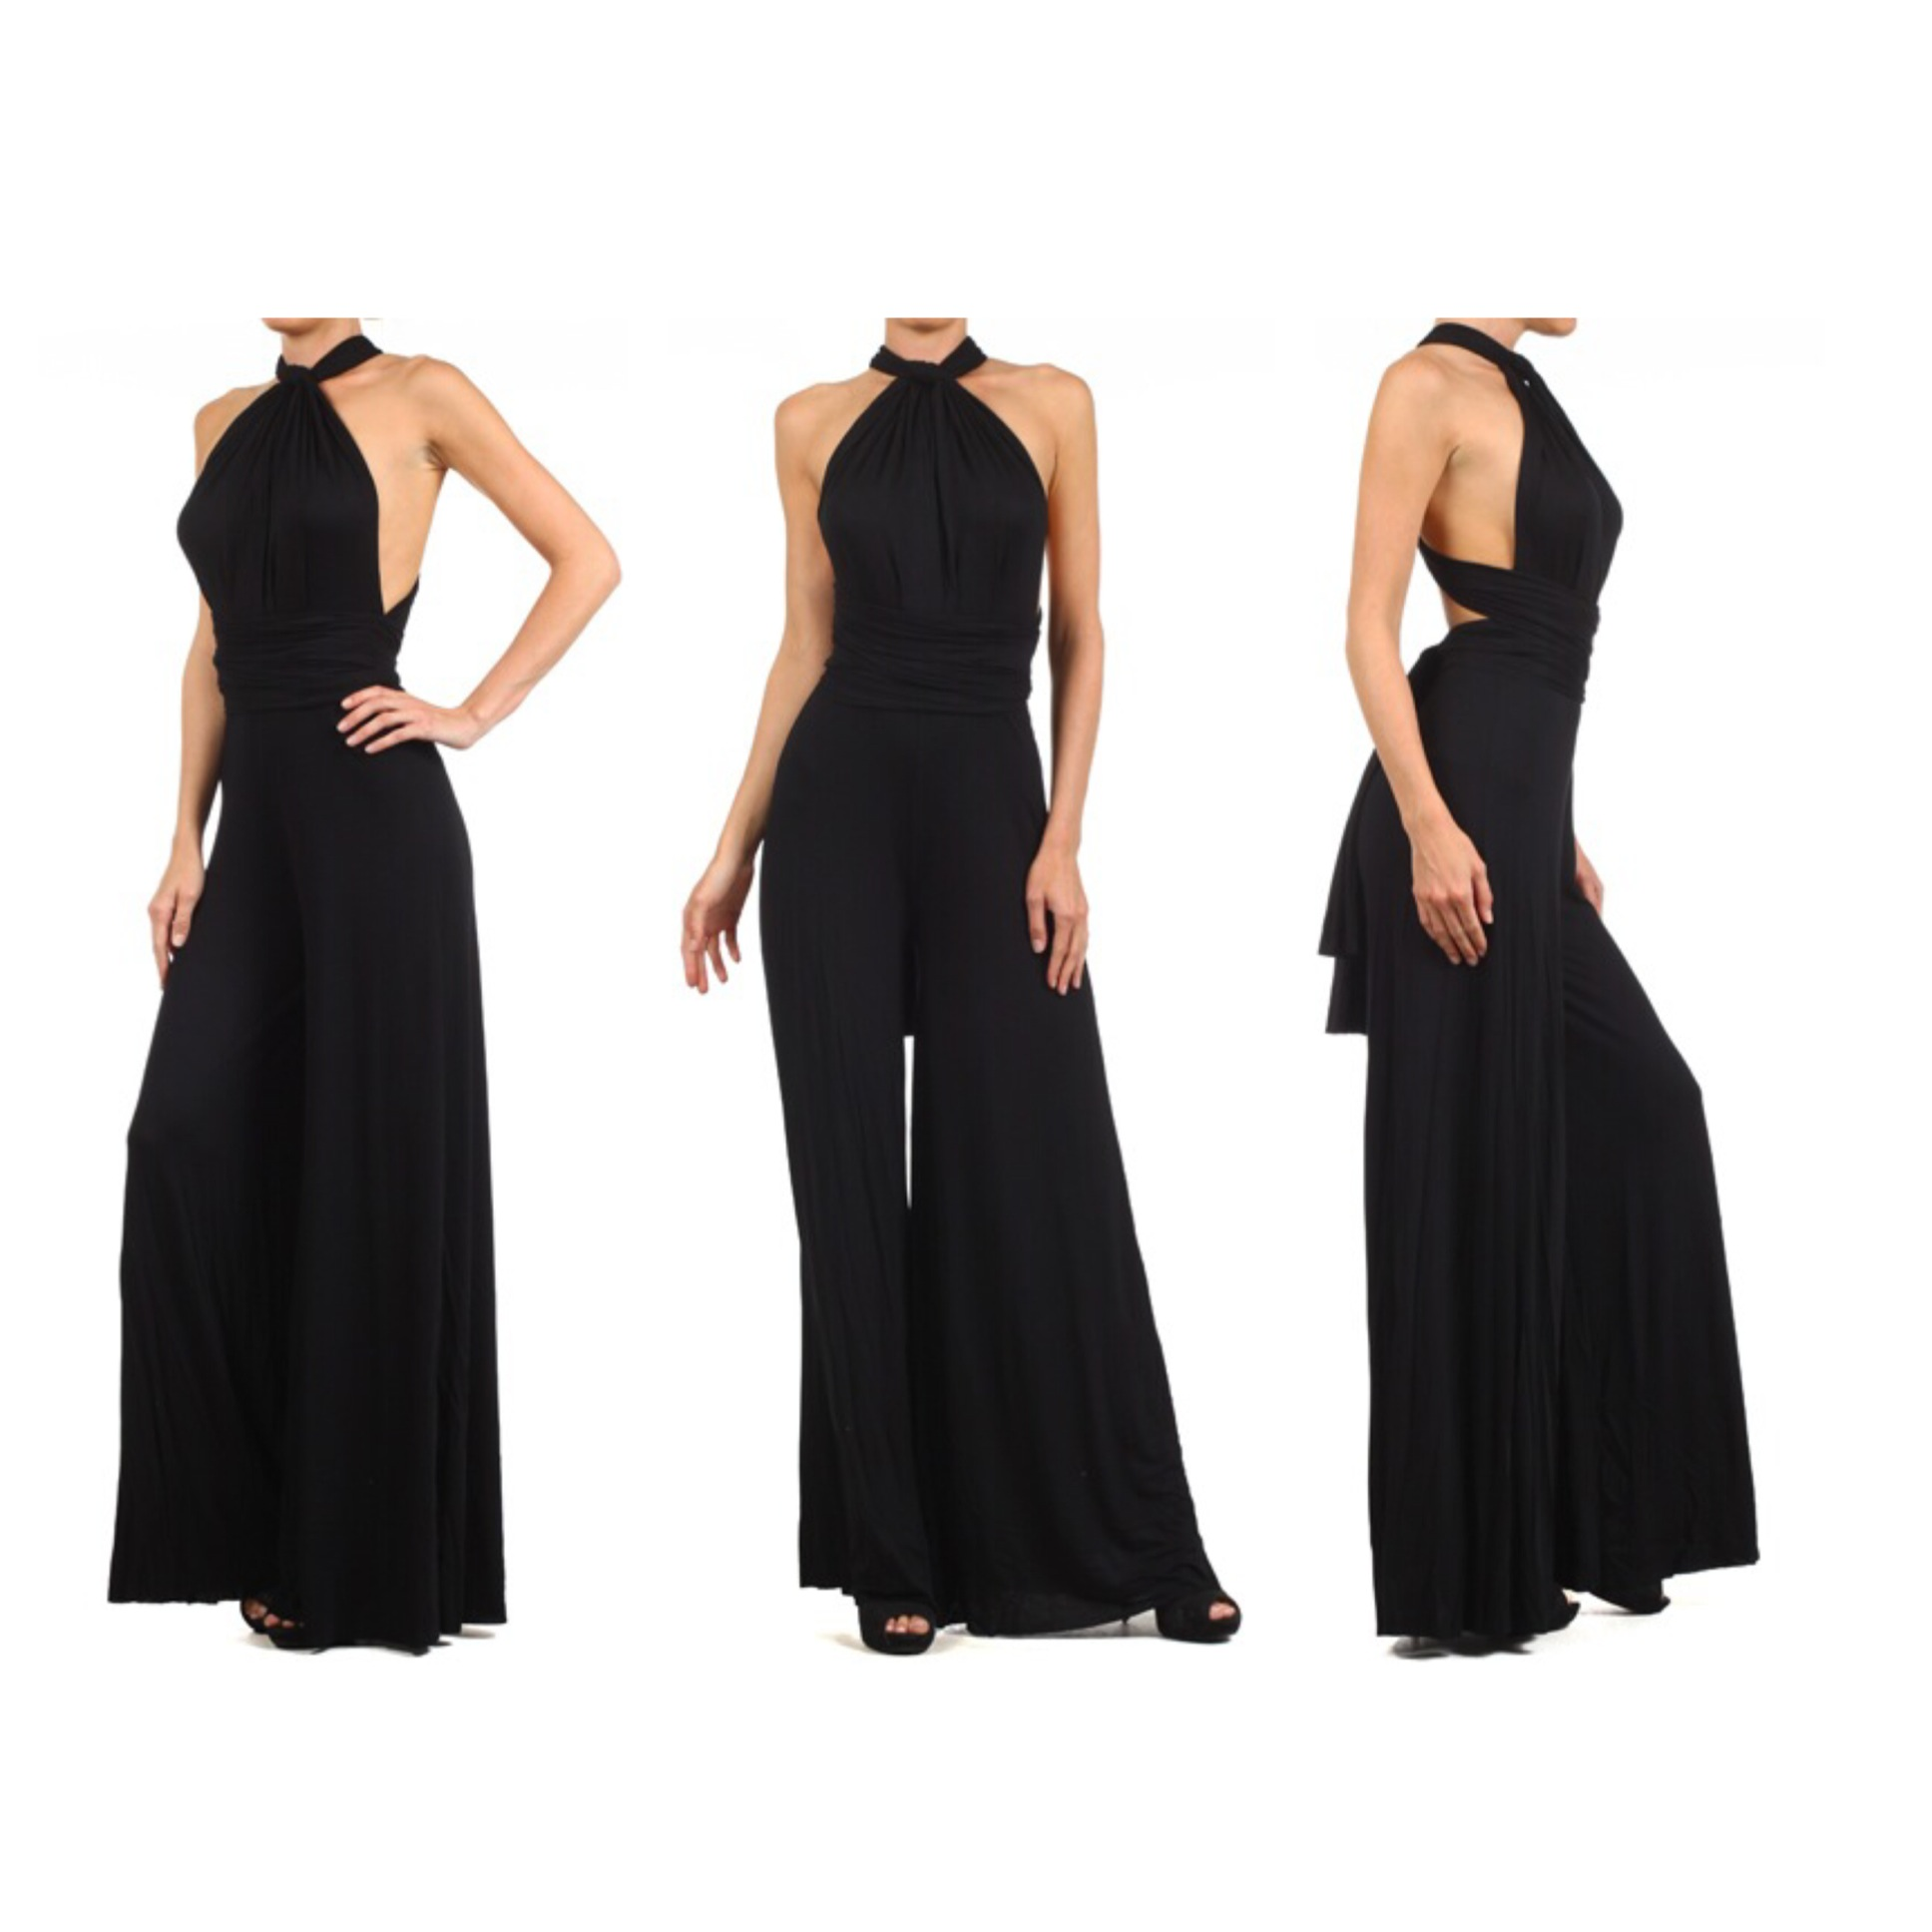 0090541bf0a Convertible Jumpsuit on Storenvy